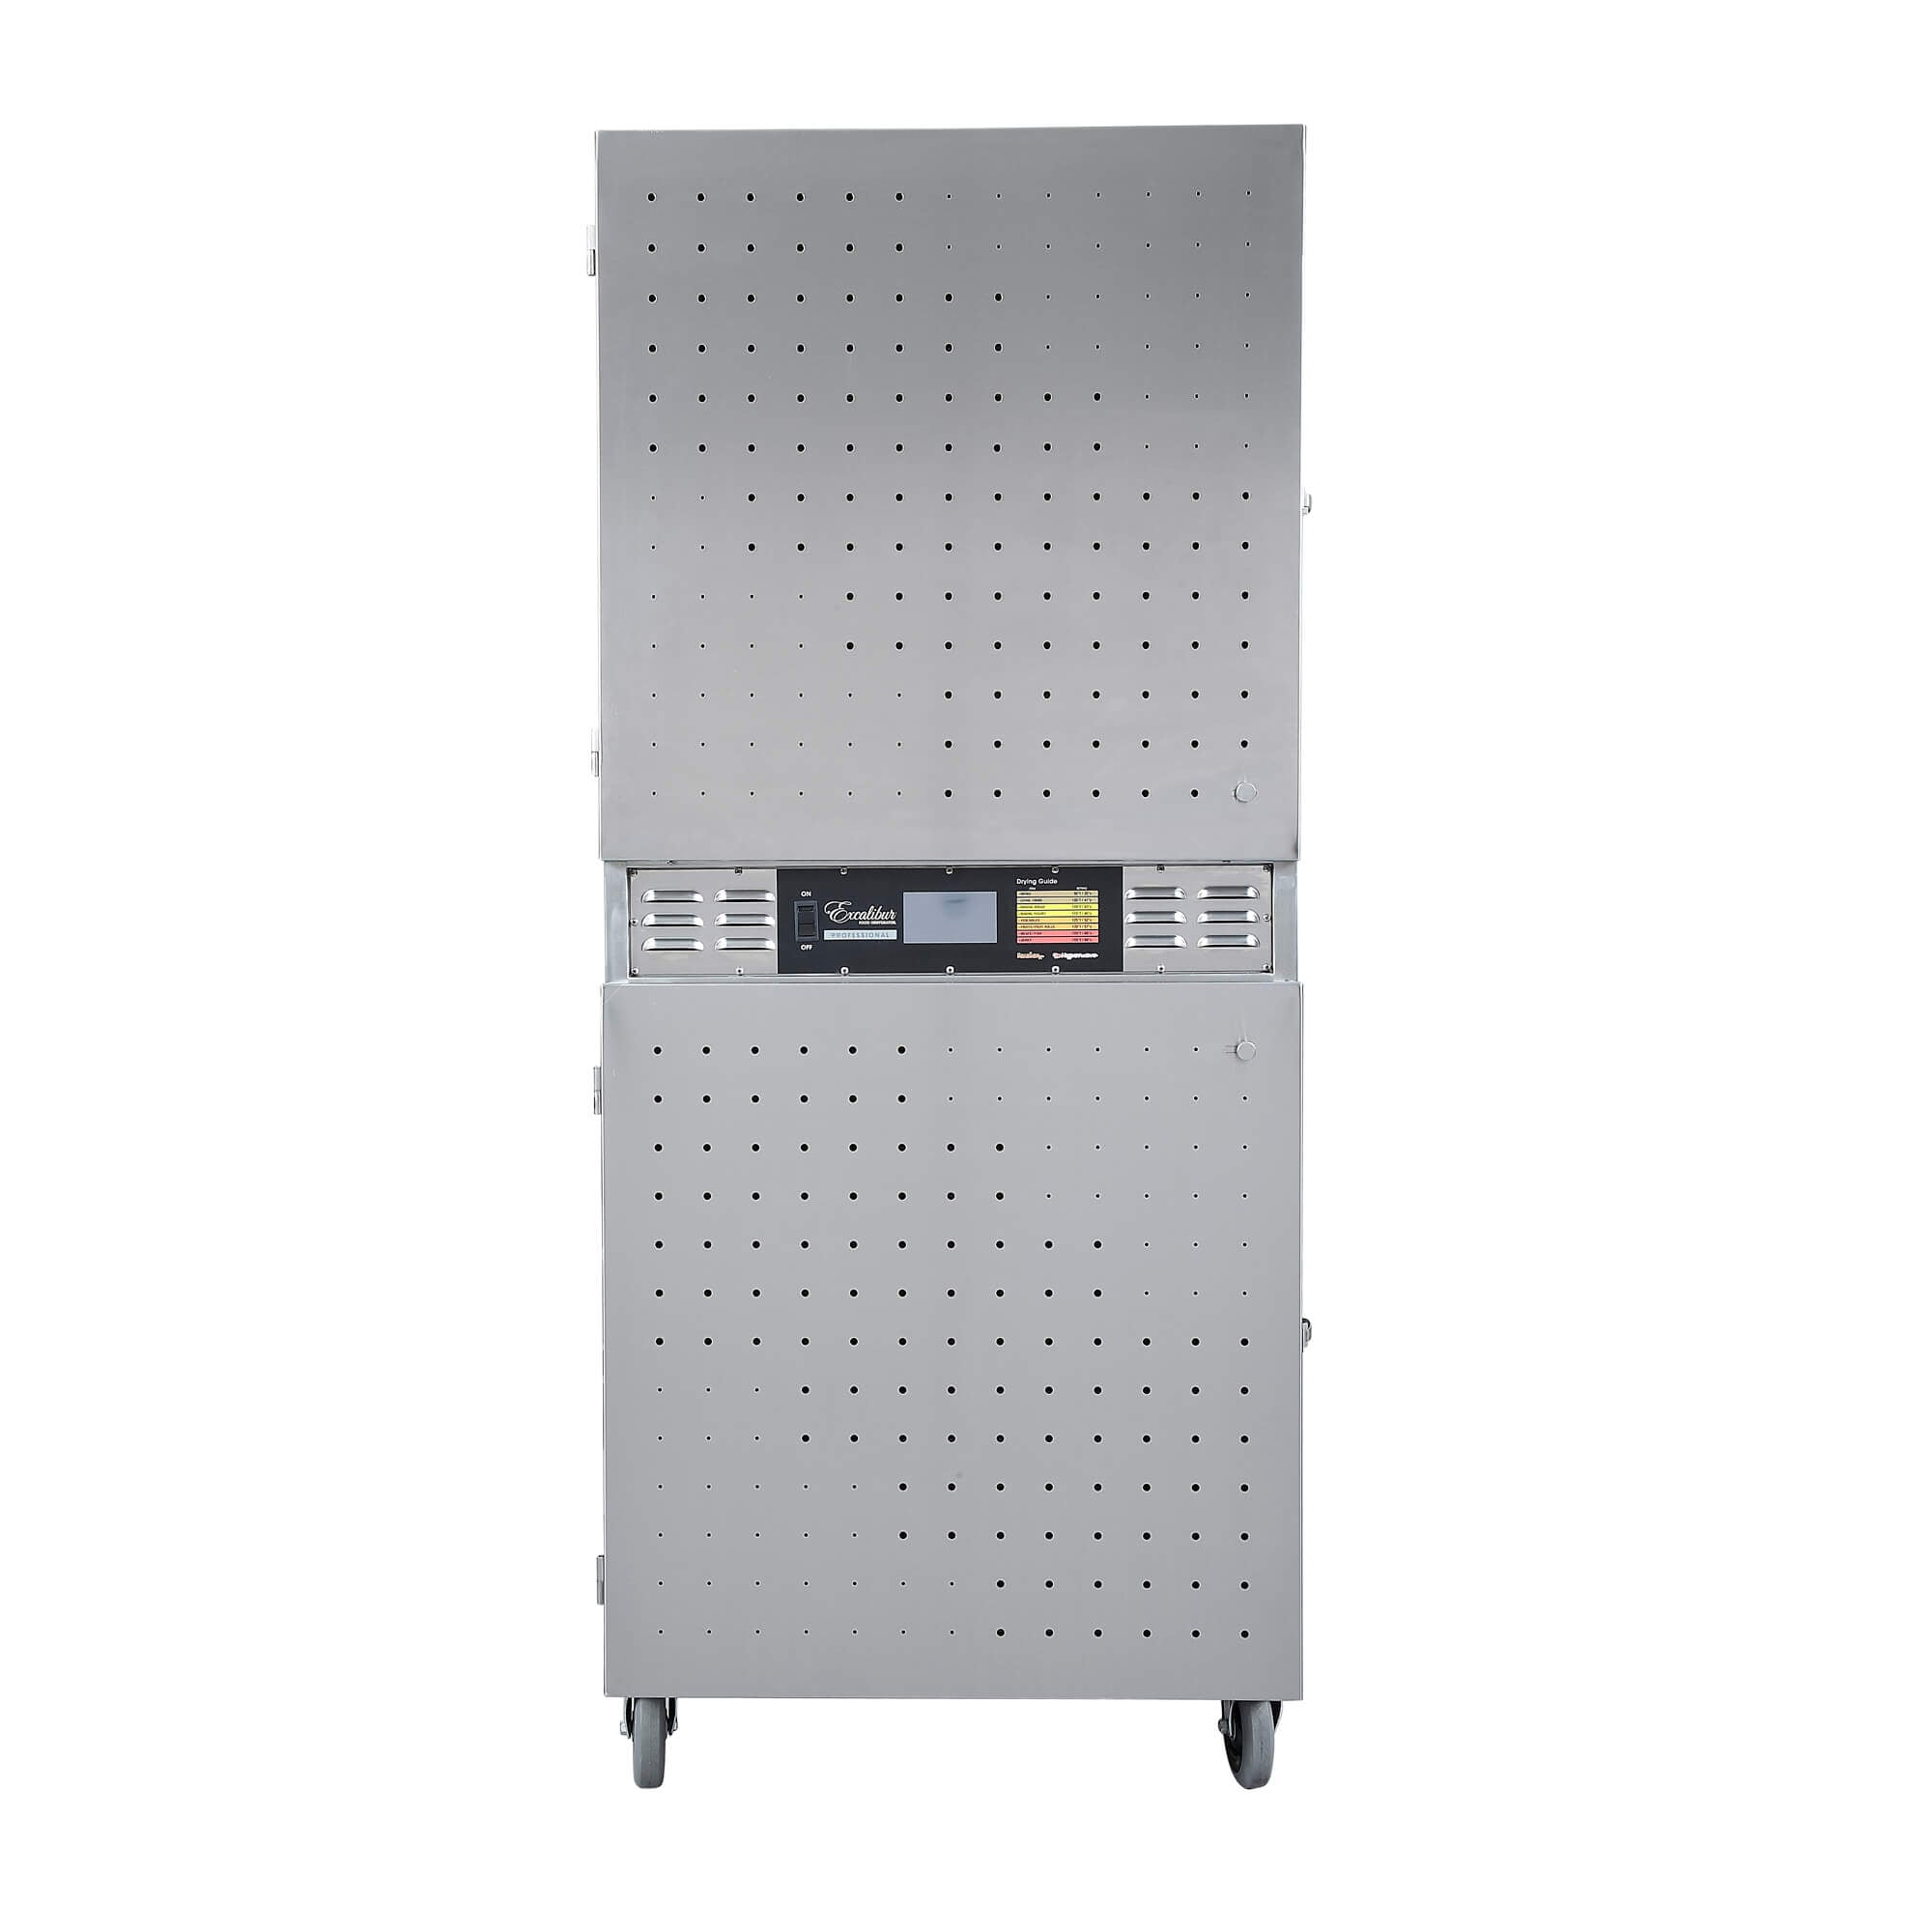 Excalibur COMM2 42 tray commercial dehydrator with door closed.